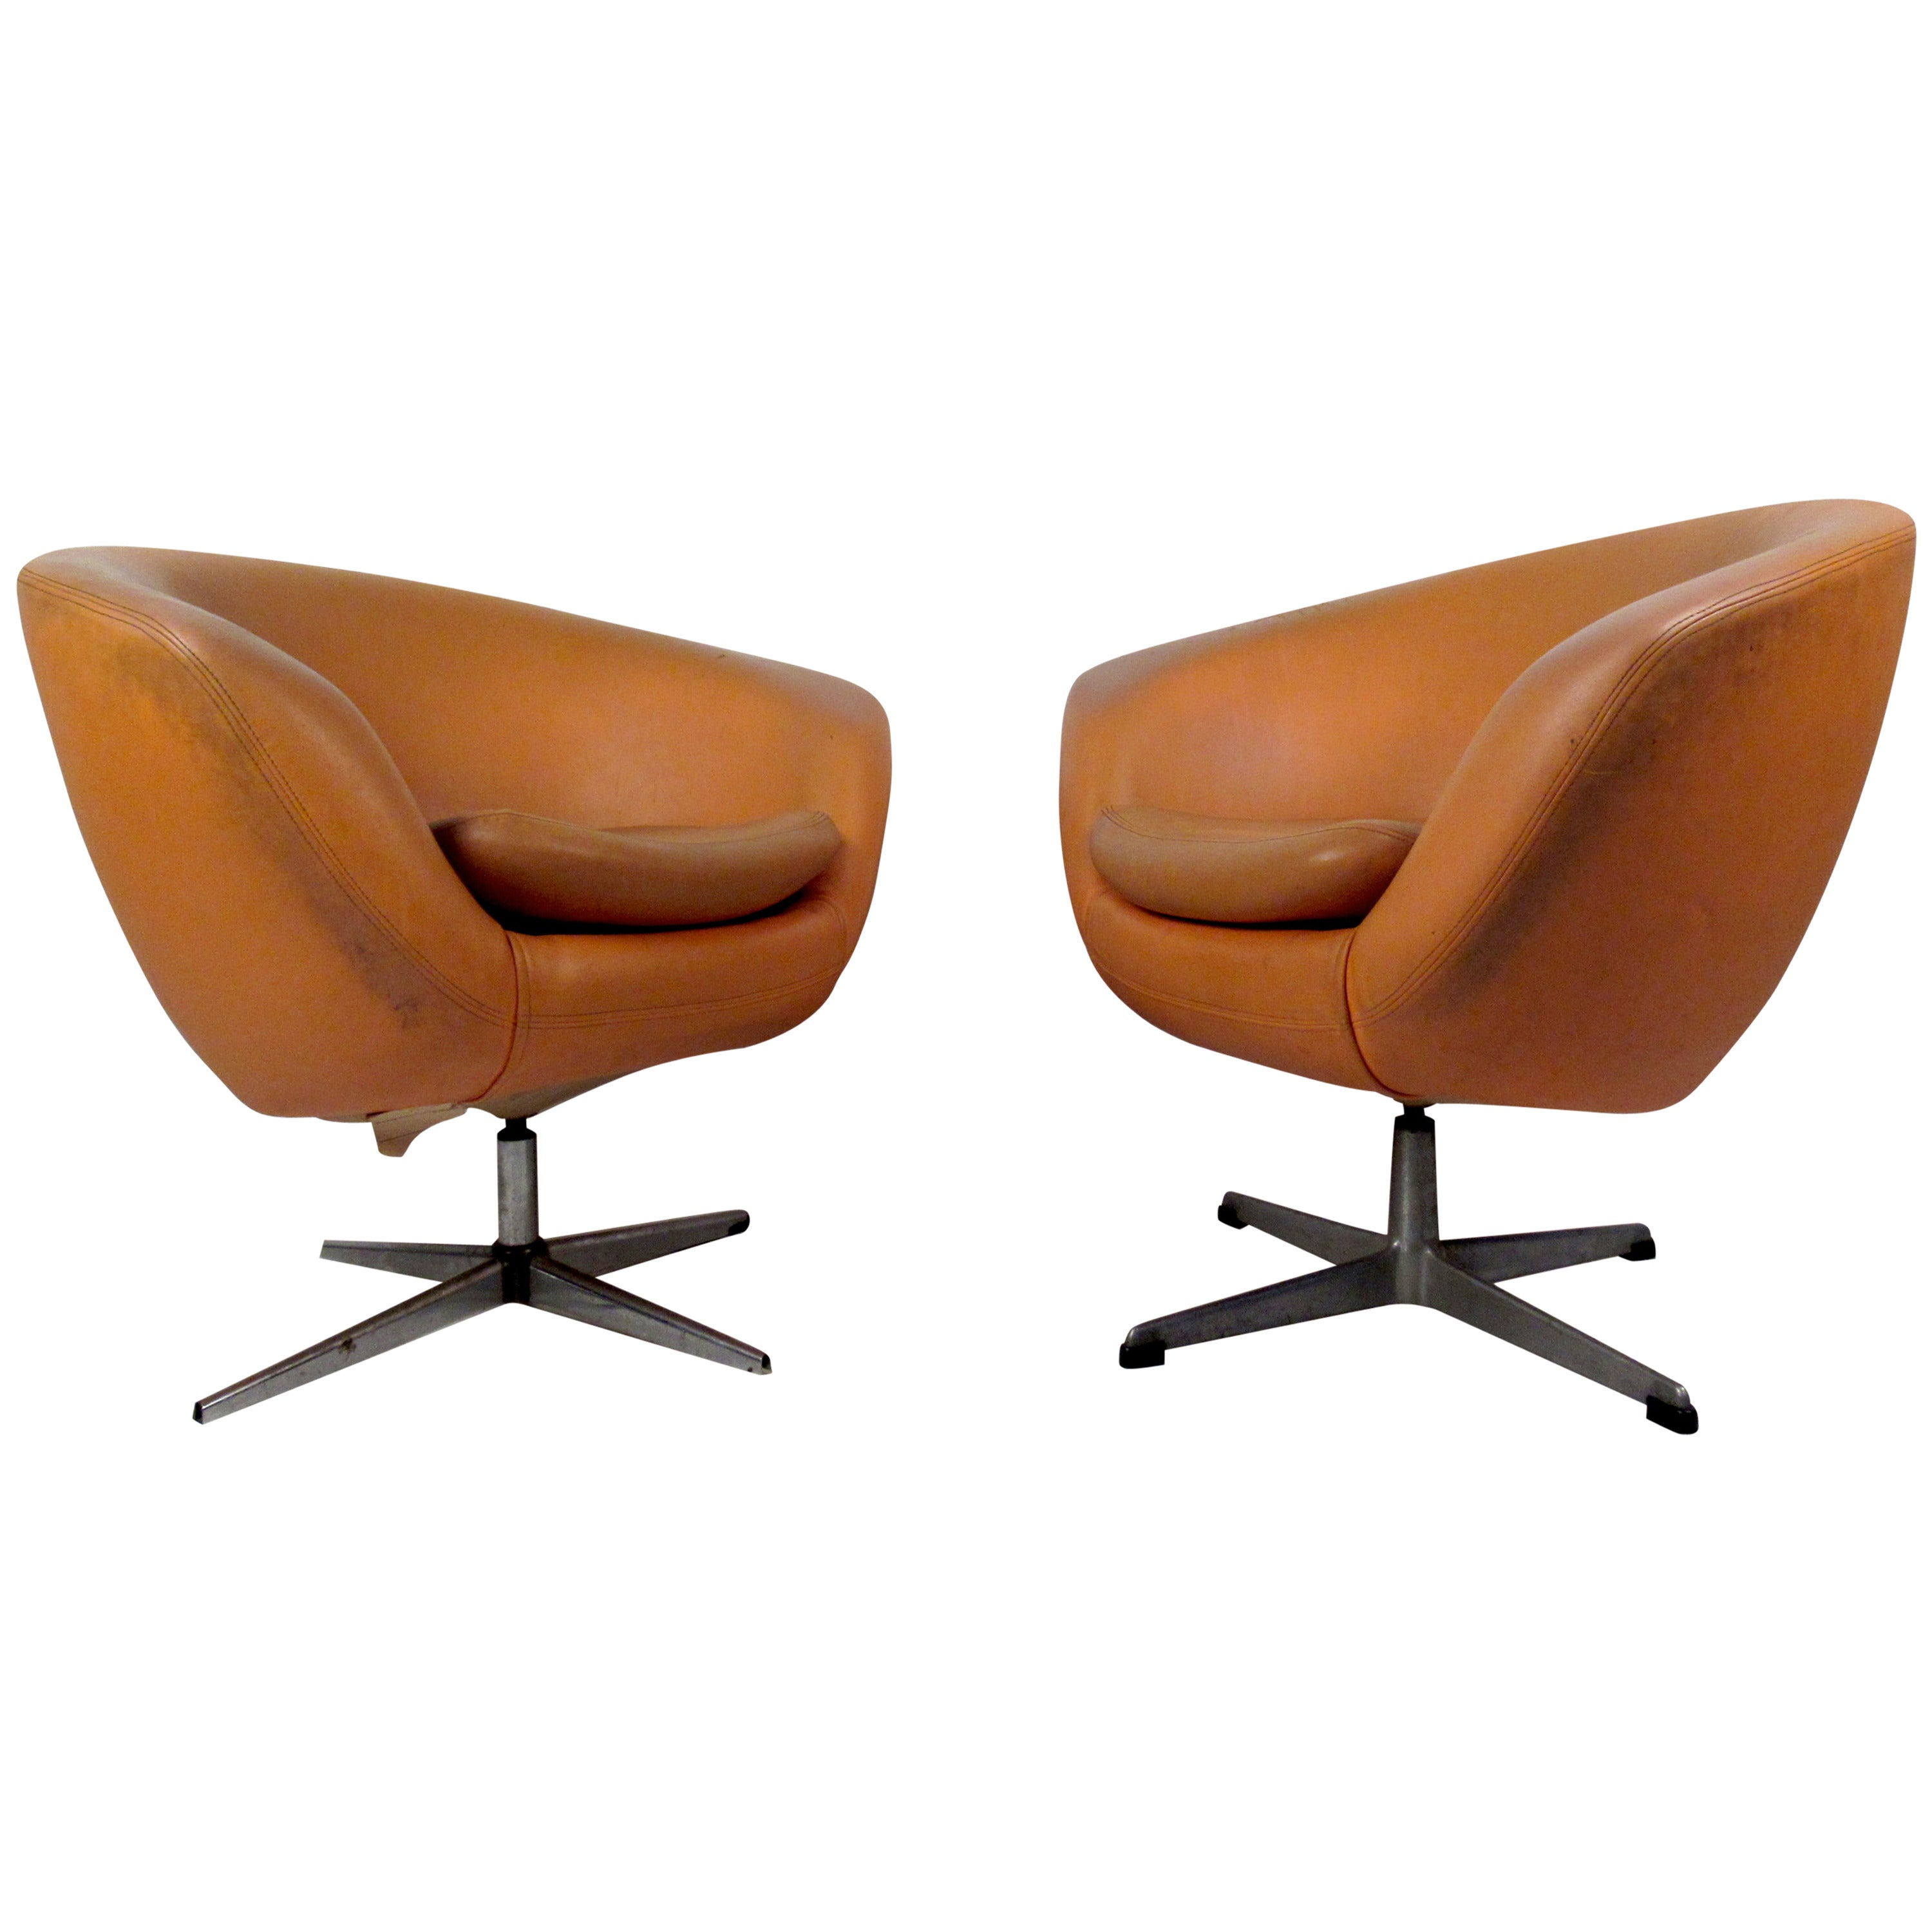 Pair of Mid-Century Modern Overman Orange Lounge Chairs